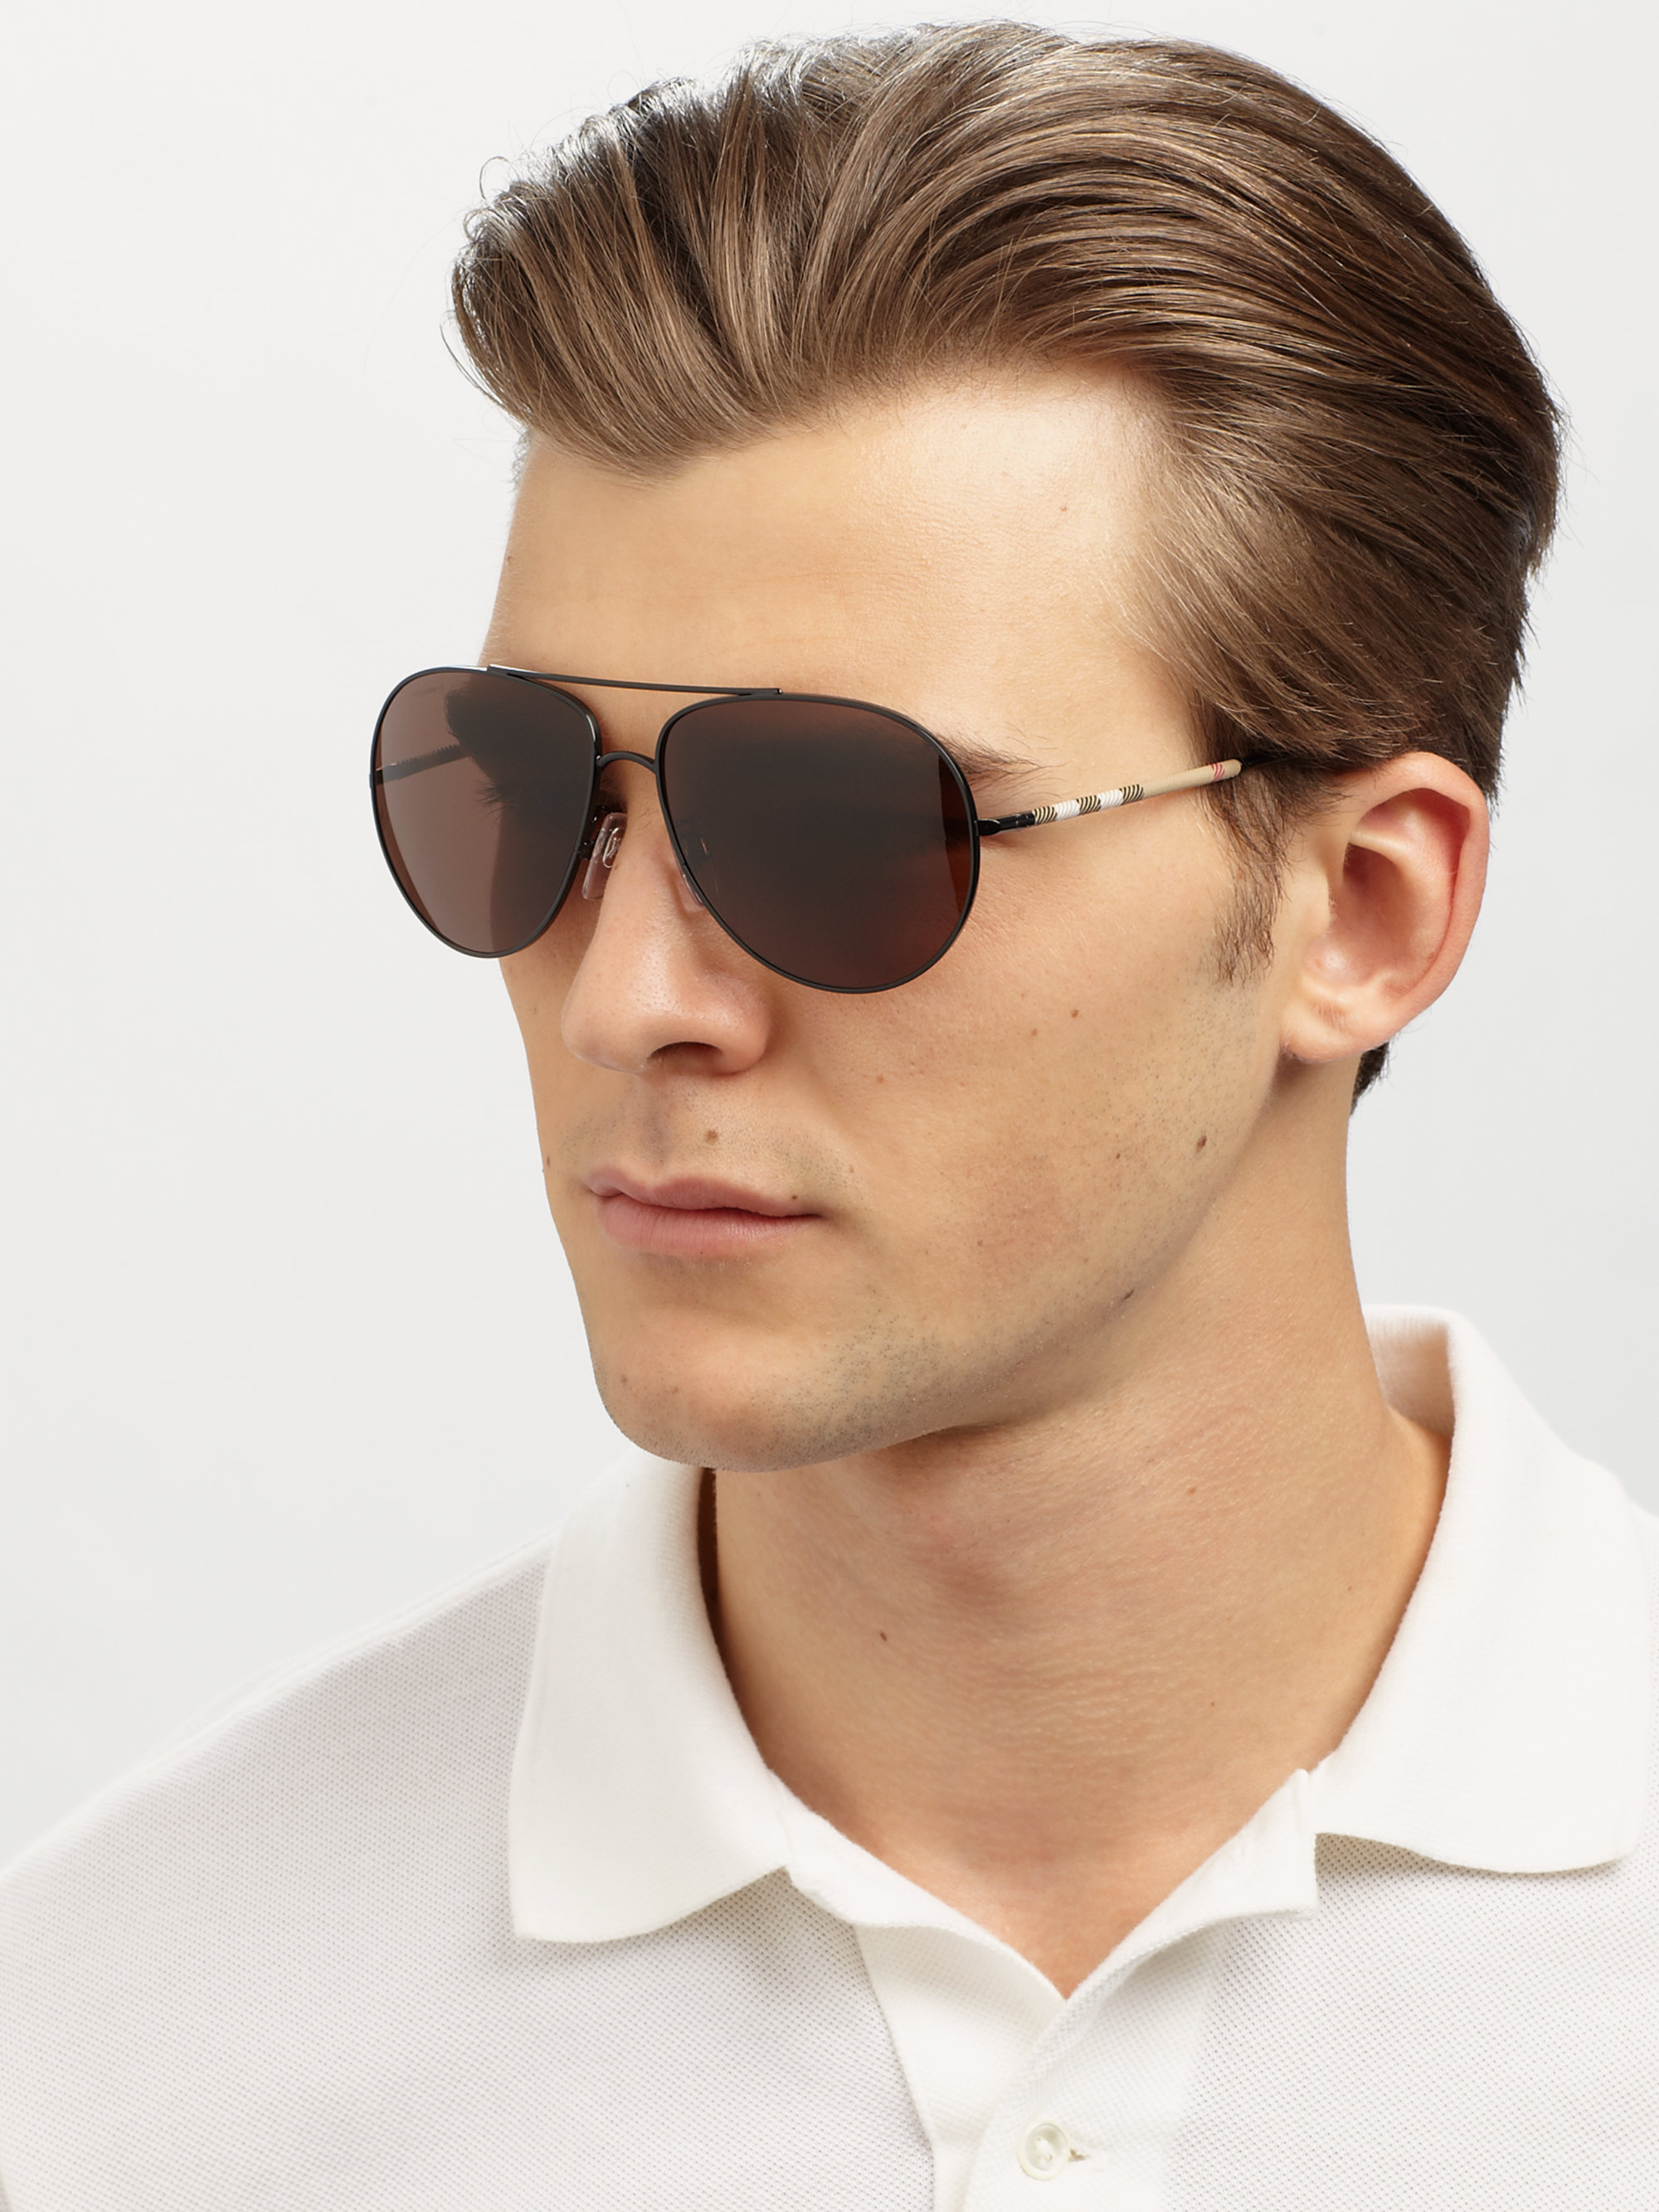 5160e96fffc6 Lyst - Burberry Metal Aviator Sunglasses in Black for Men